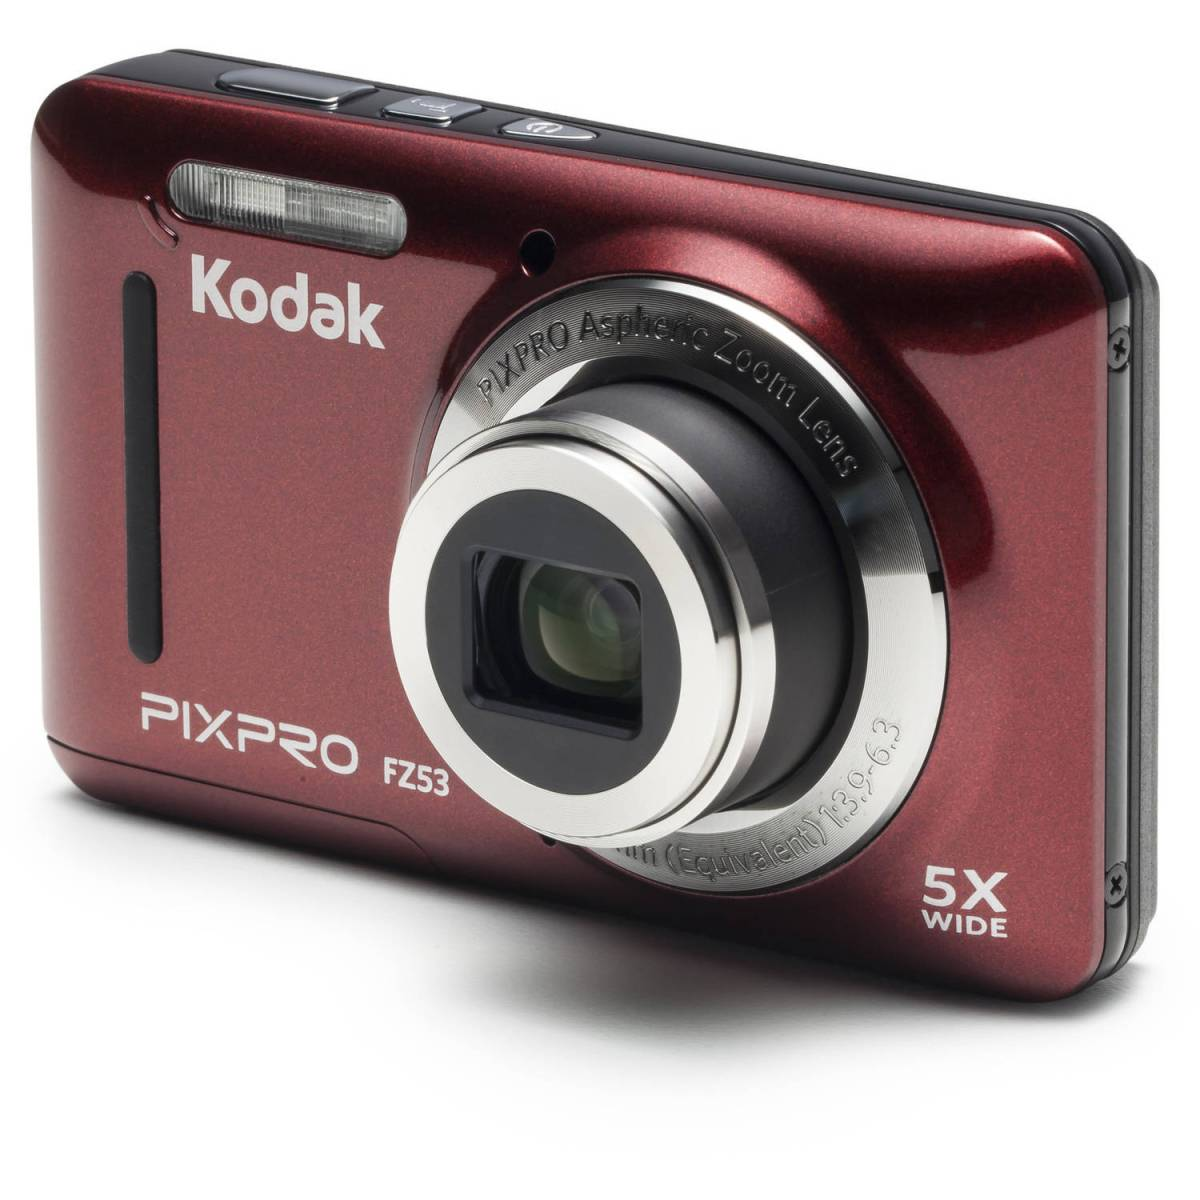 KODAK PIXPRO FZ53 Compact Digital Camera - 16MP 5X Optical Zoom HD 720p Video (Red)